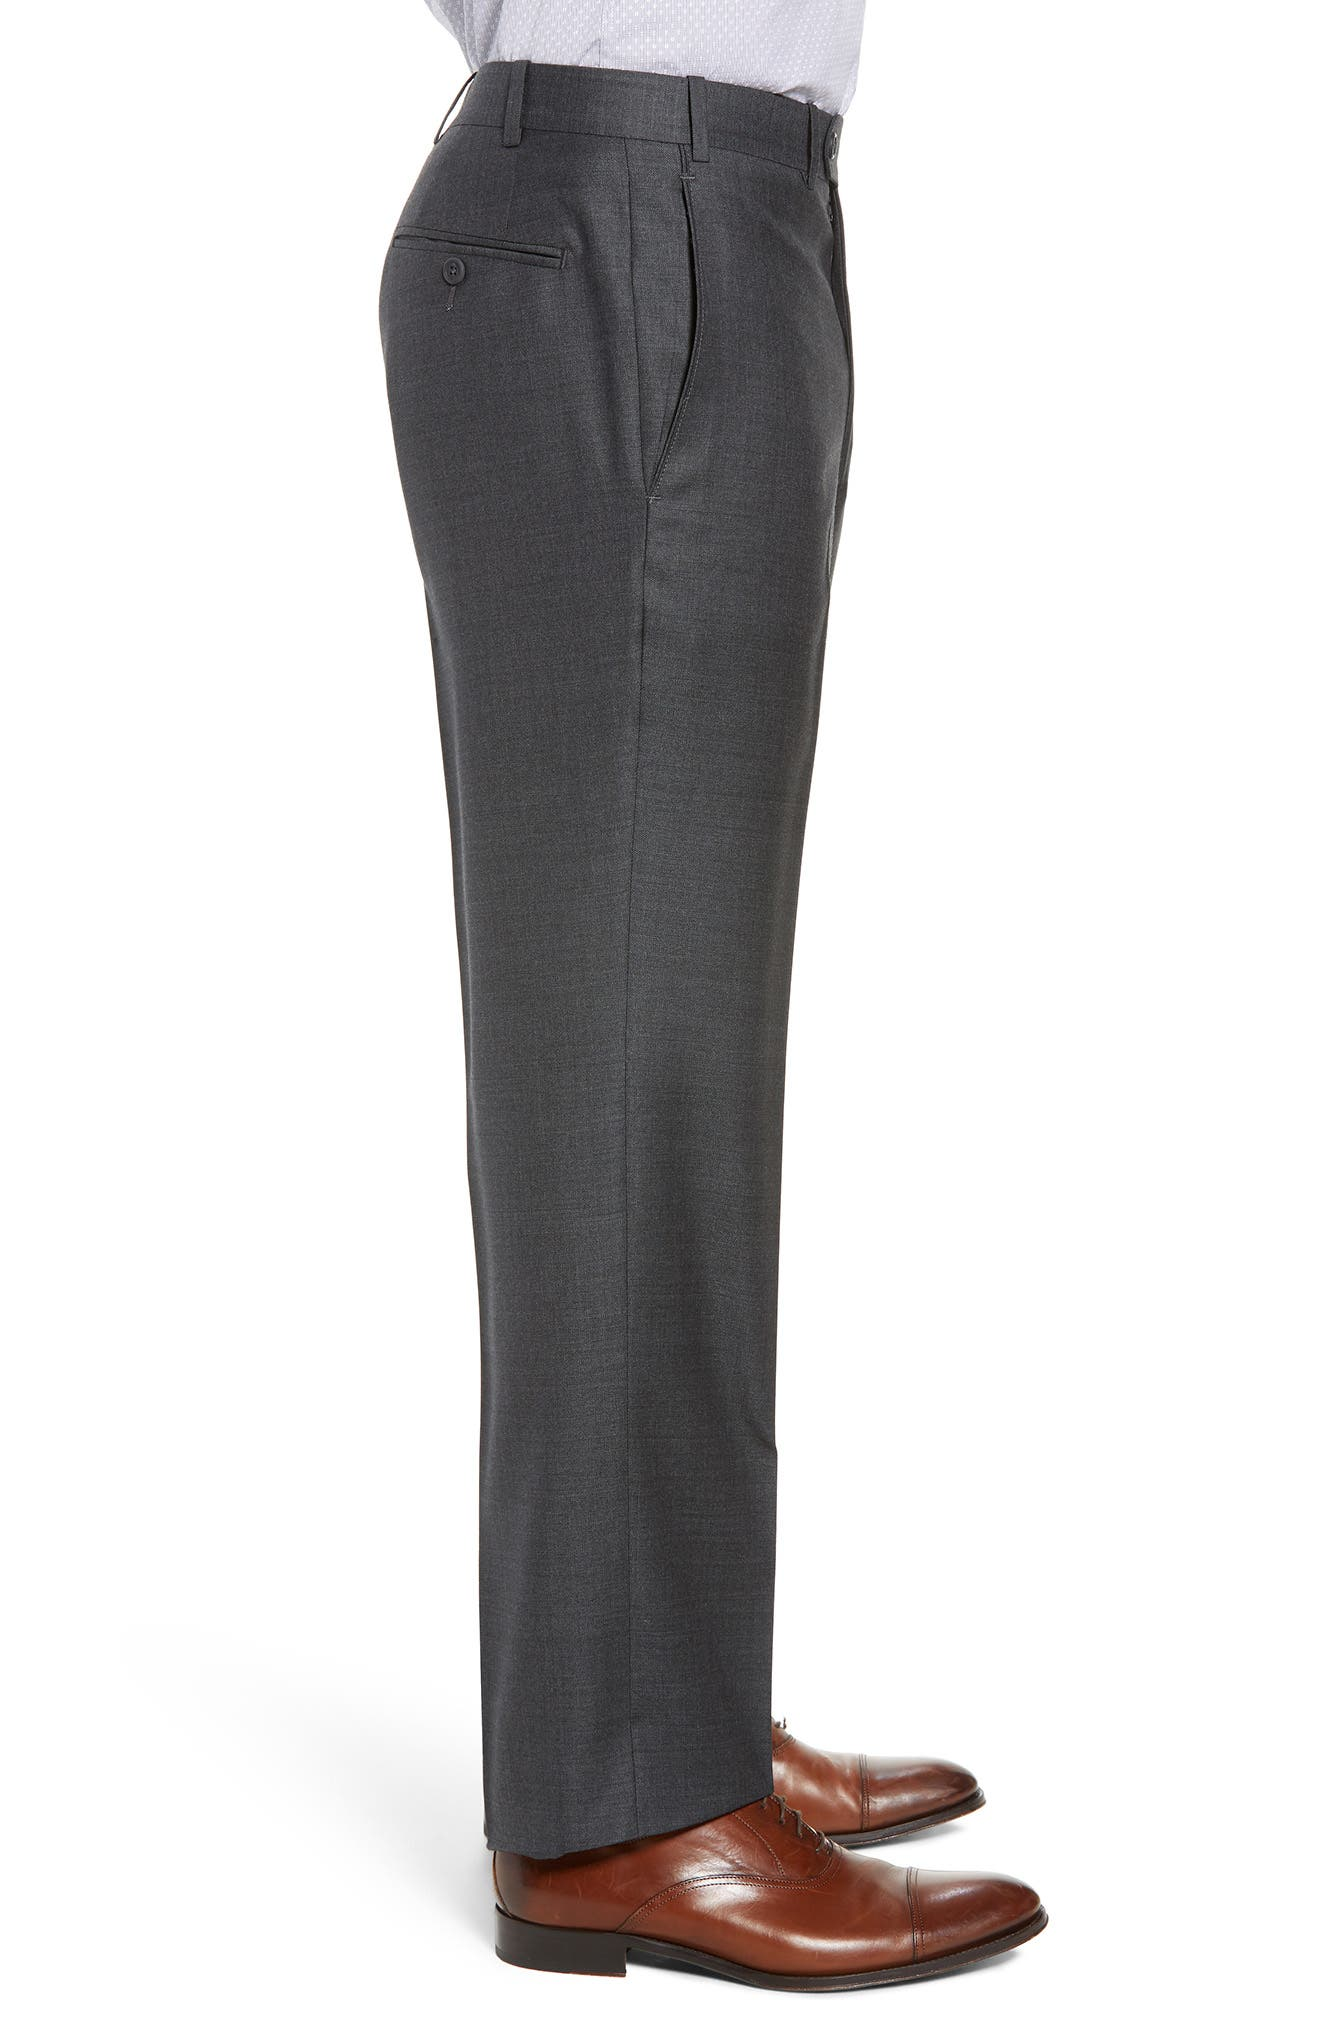 Torino Flat Front Solid Wool Trousers,                             Alternate thumbnail 3, color,                             Charcoal